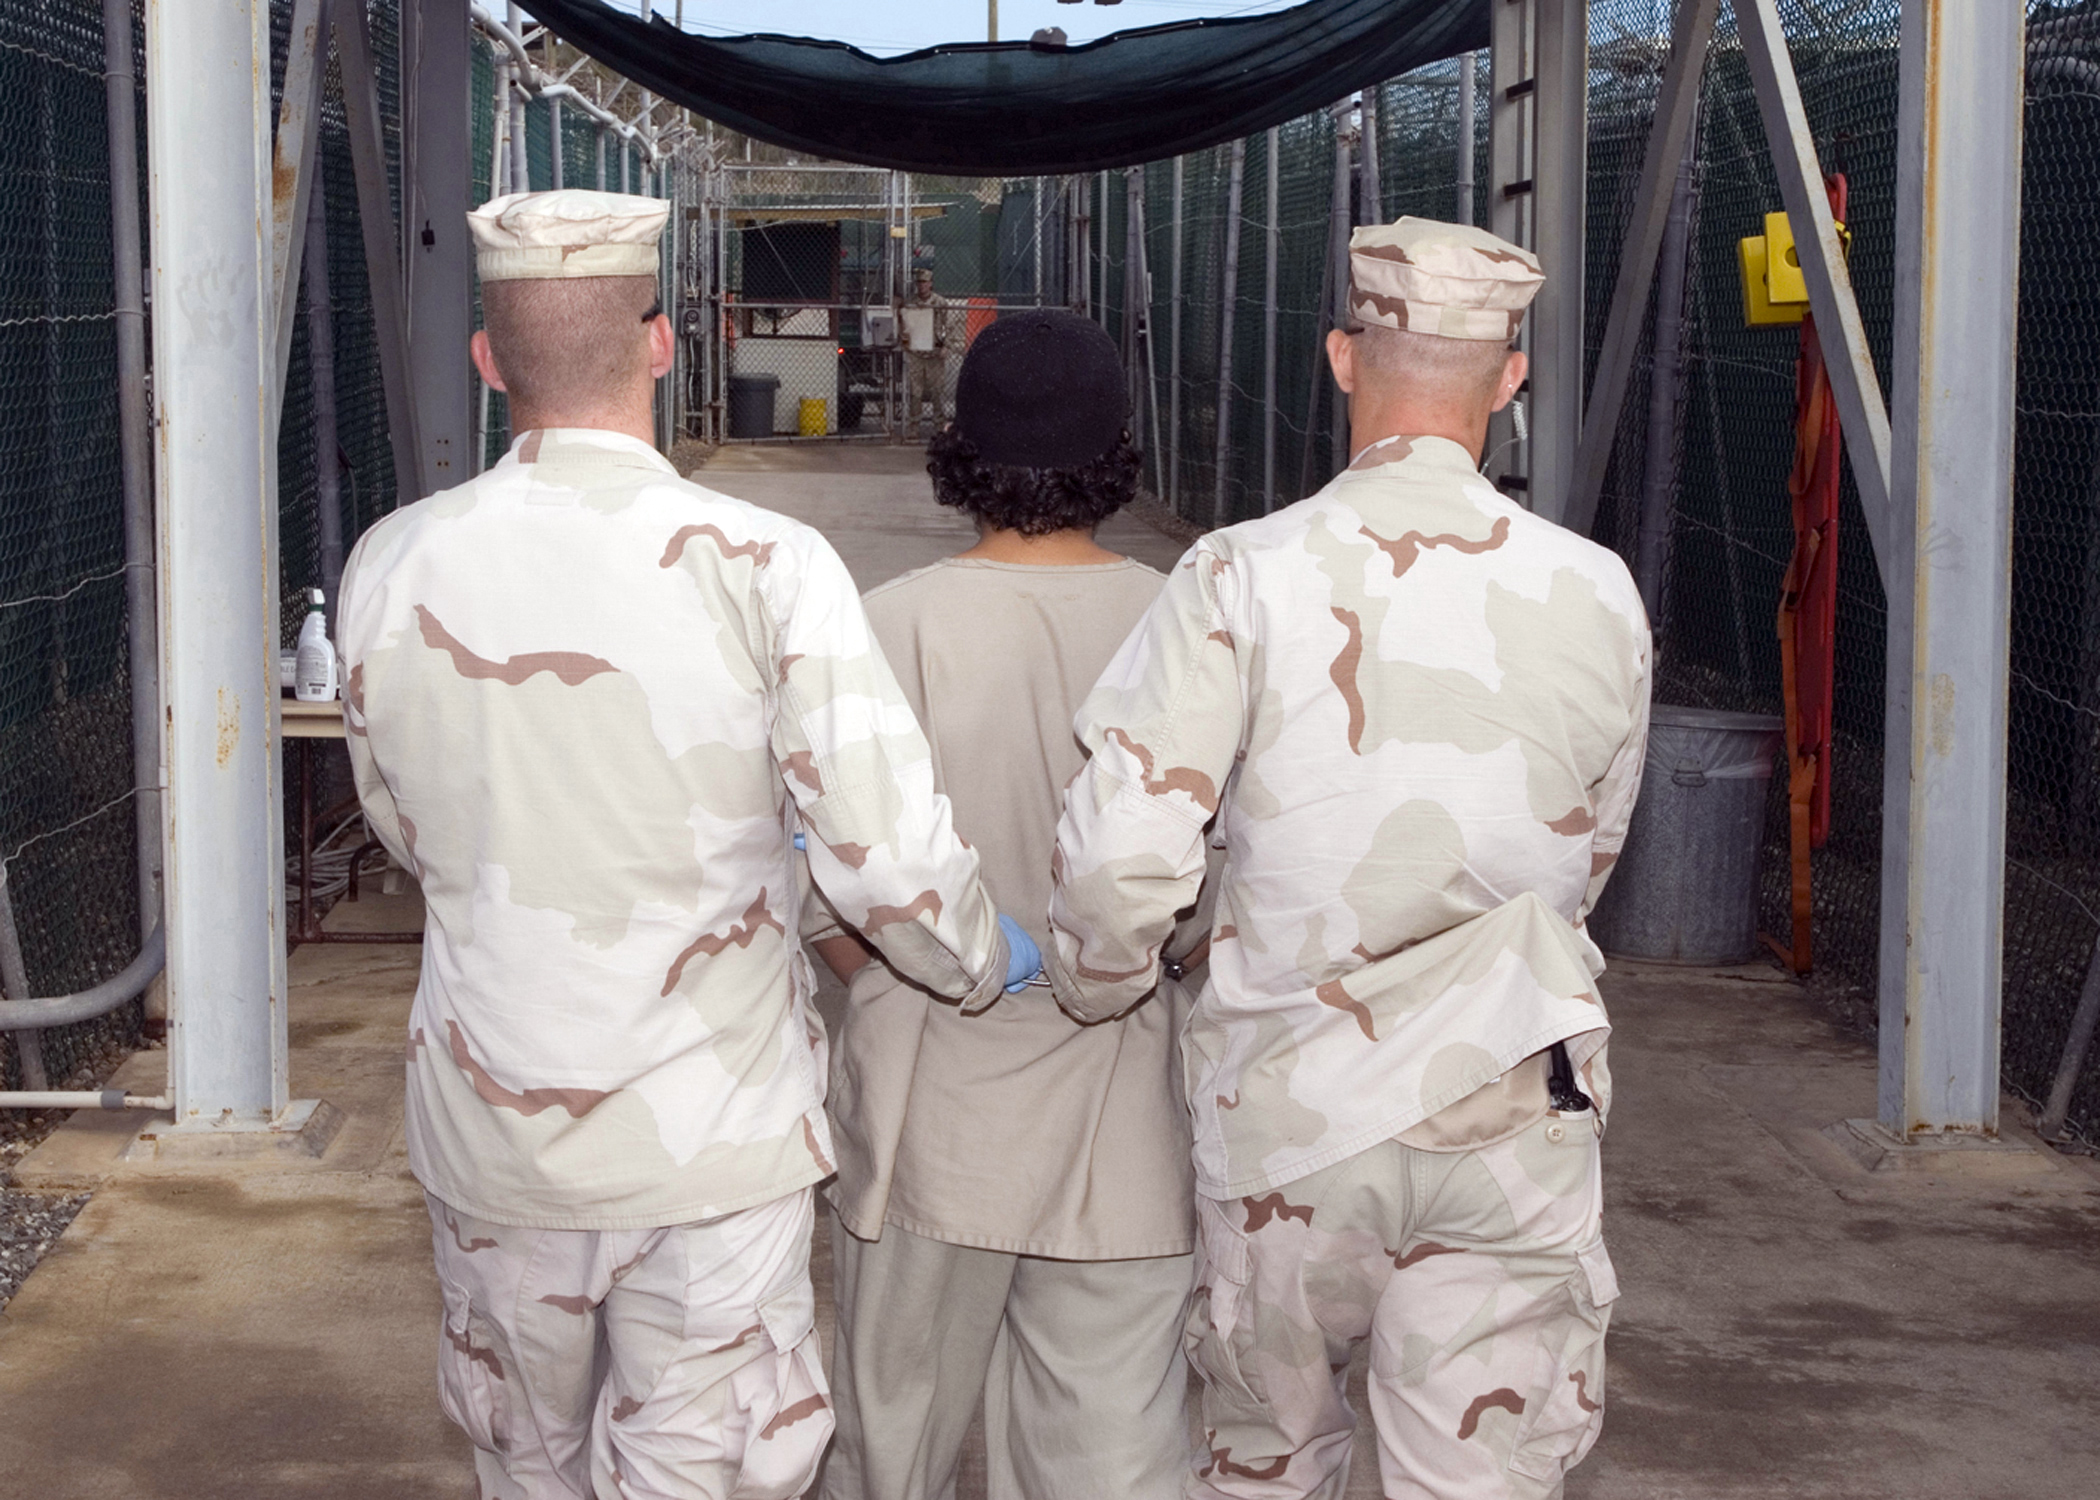 U.S. Soldiers Lead a Detainee through the Prison at Guantanamo Bay